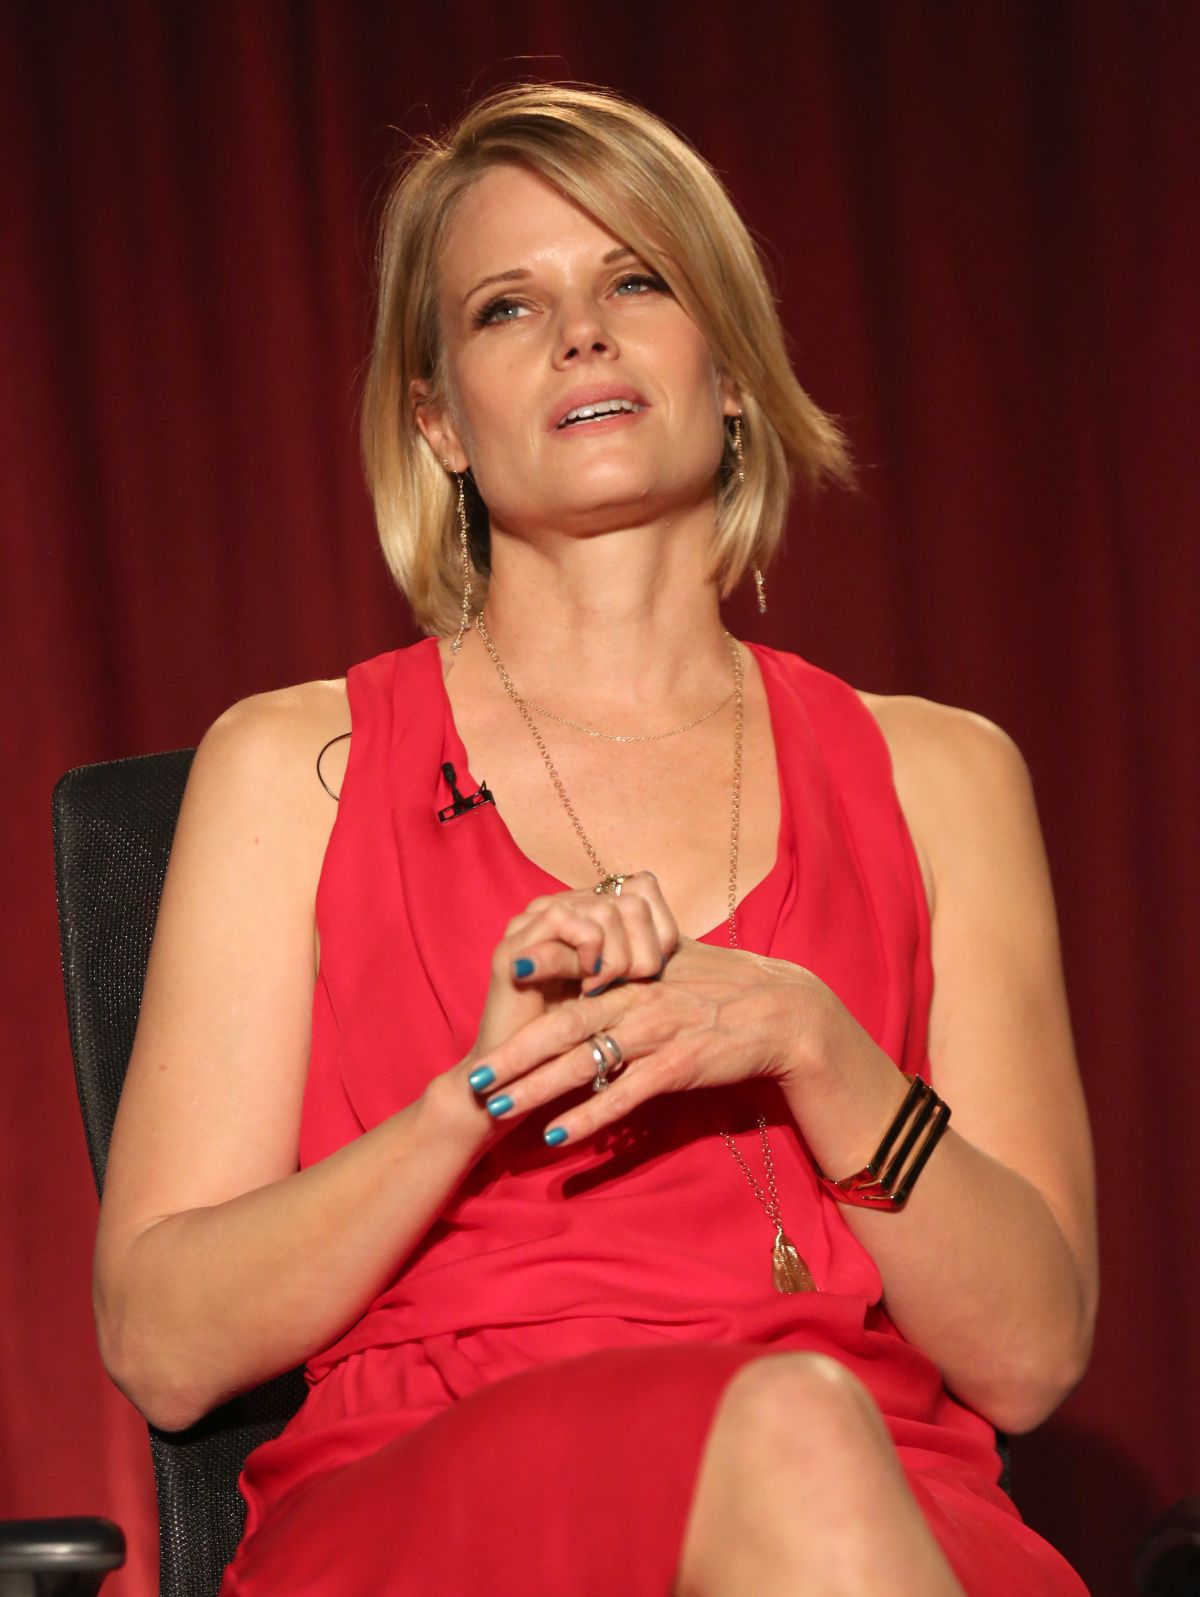 joelle carter net worthjoelle carter twitter, joelle carter photo gallery, joelle carter, joelle carter american pie 2, joelle carter instagram, joelle carter interview, joelle carter net worth, joelle carter imdb, joelle carter bikini, joelle carter measurements, joelle carter sons of anarchy, joelle carter nudography, joelle carter height weight